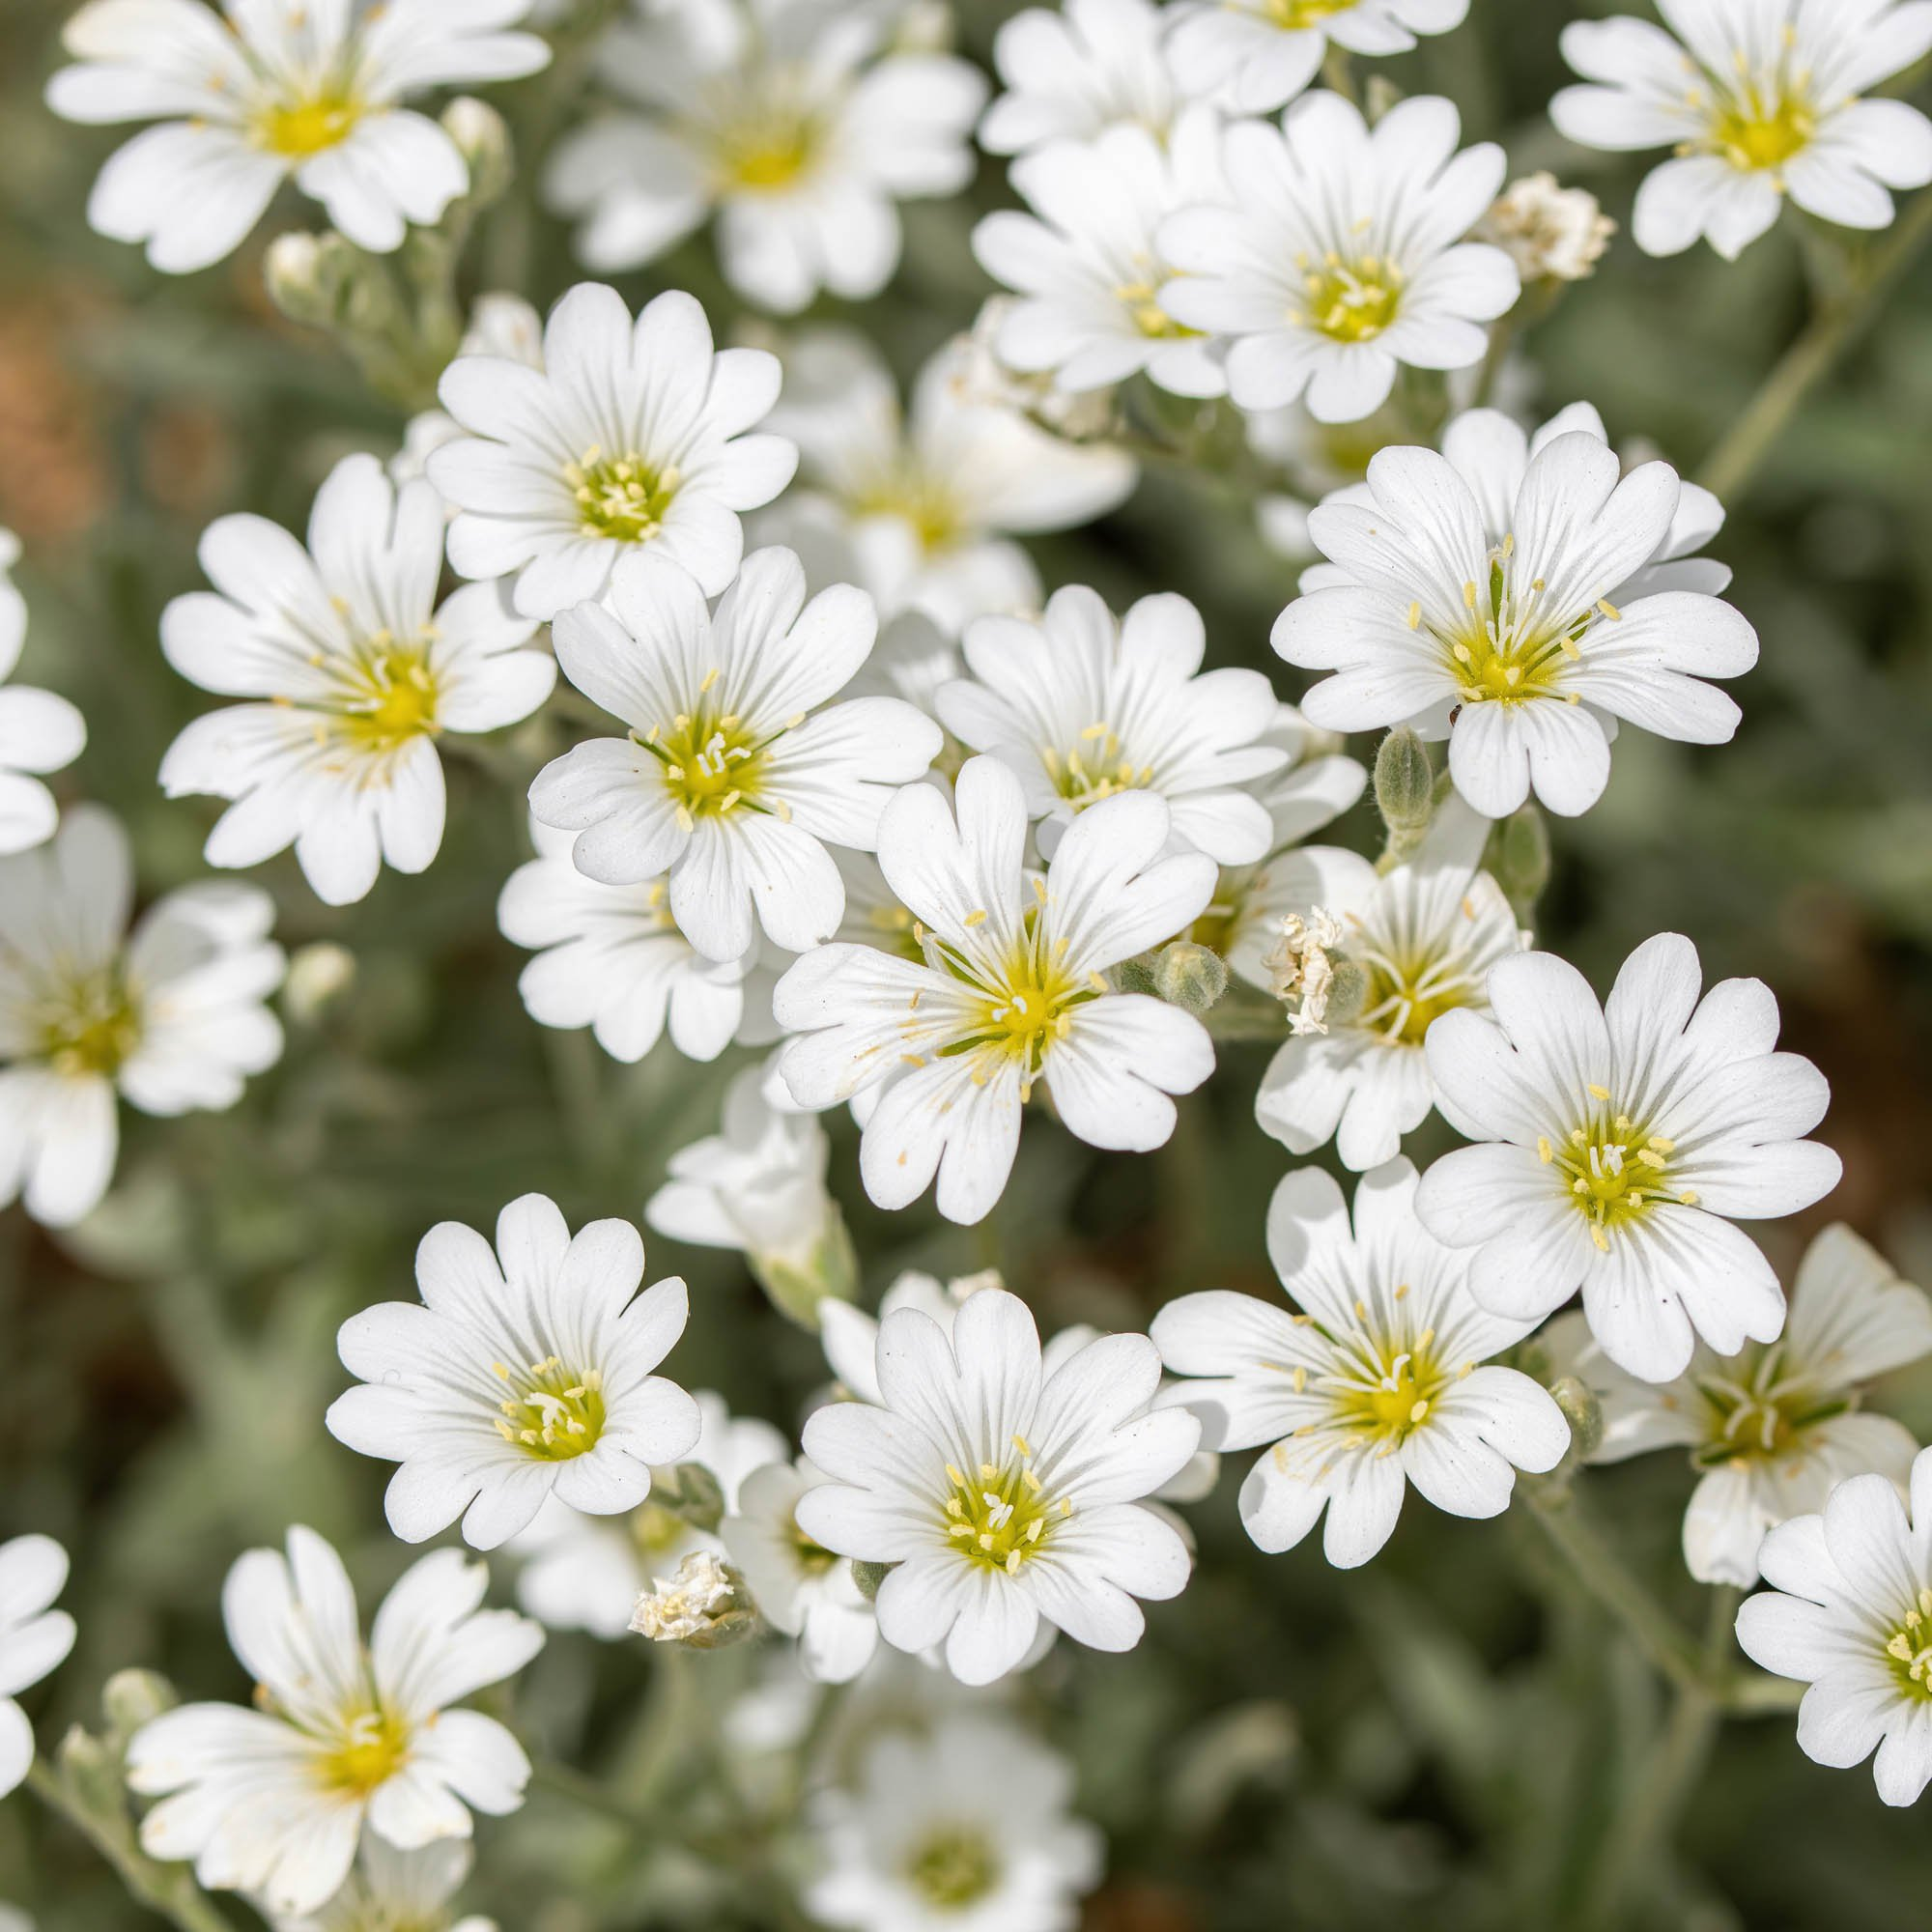 dianthus seed  dianthus arenarius white ground cover seeds, Natural flower